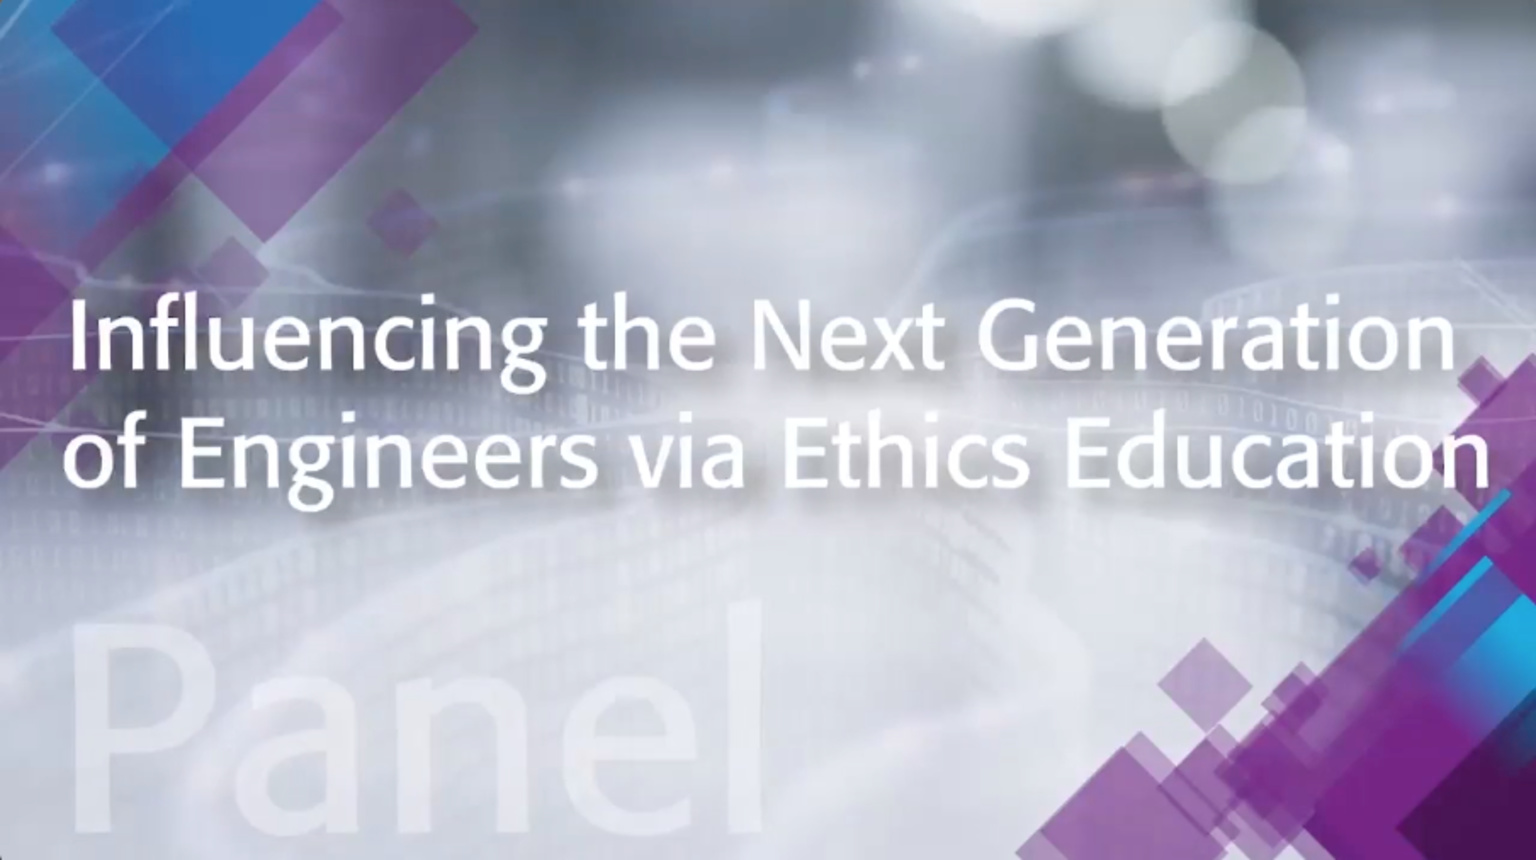 Influencing the Next Generation of Engineers via Ethics Education: IEEE TechEthics Panel